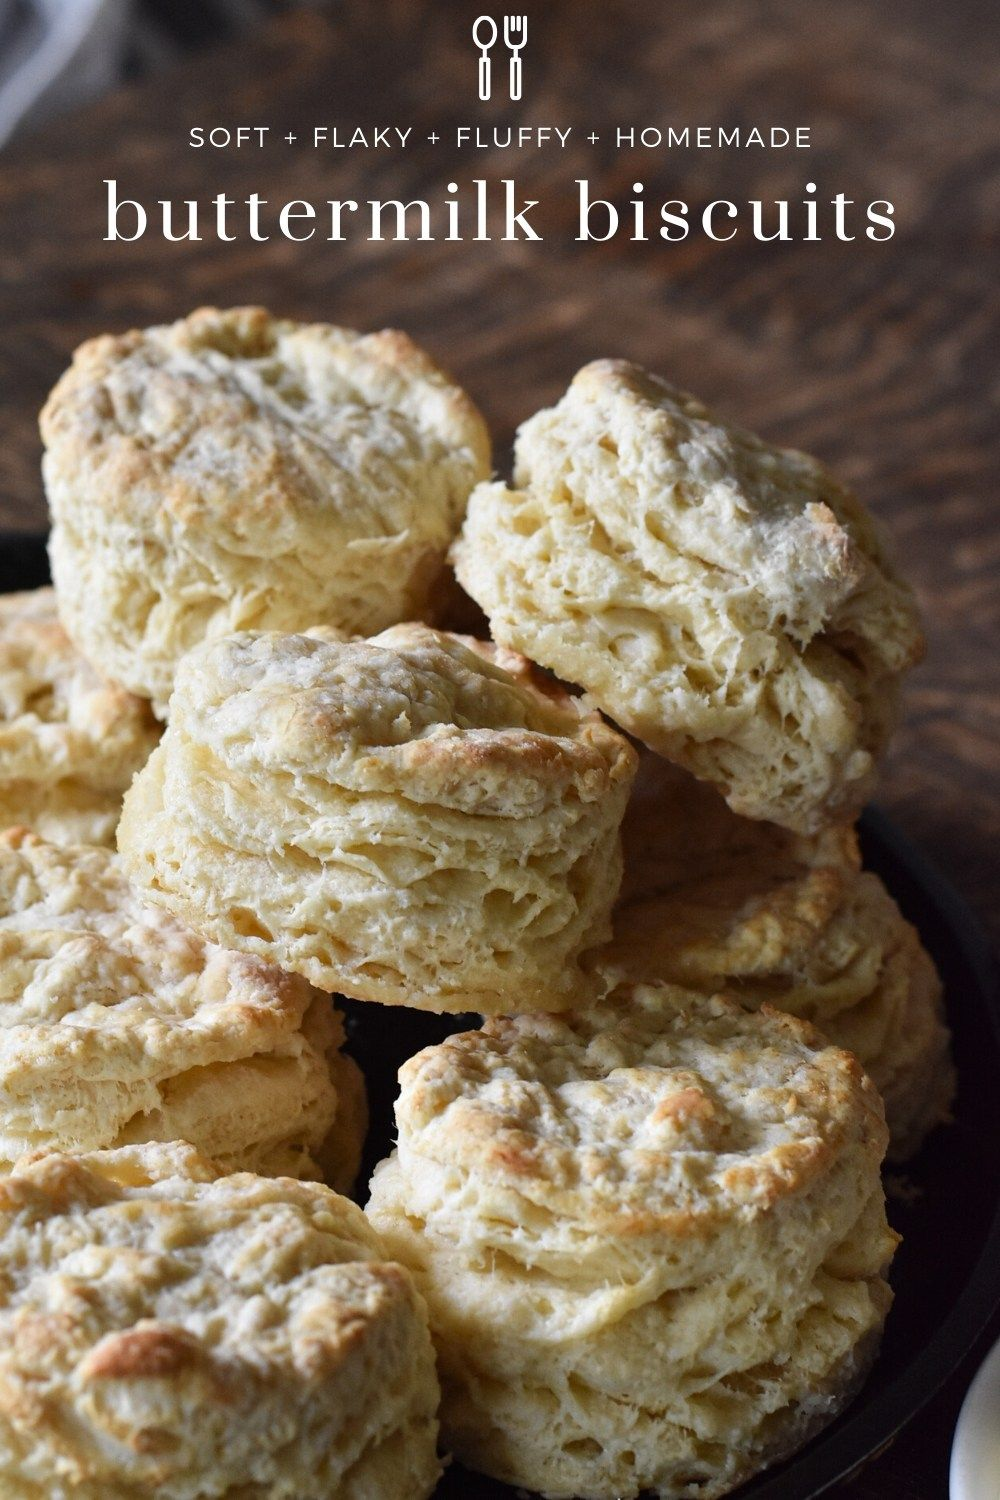 Homemade Old Fashioned Buttermilk Biscuits Rocky Hedge Farm Recipe In 2020 Baking Soda Baking Powder Buttermilk Biscuits Homemade Buttermilk Biscuits